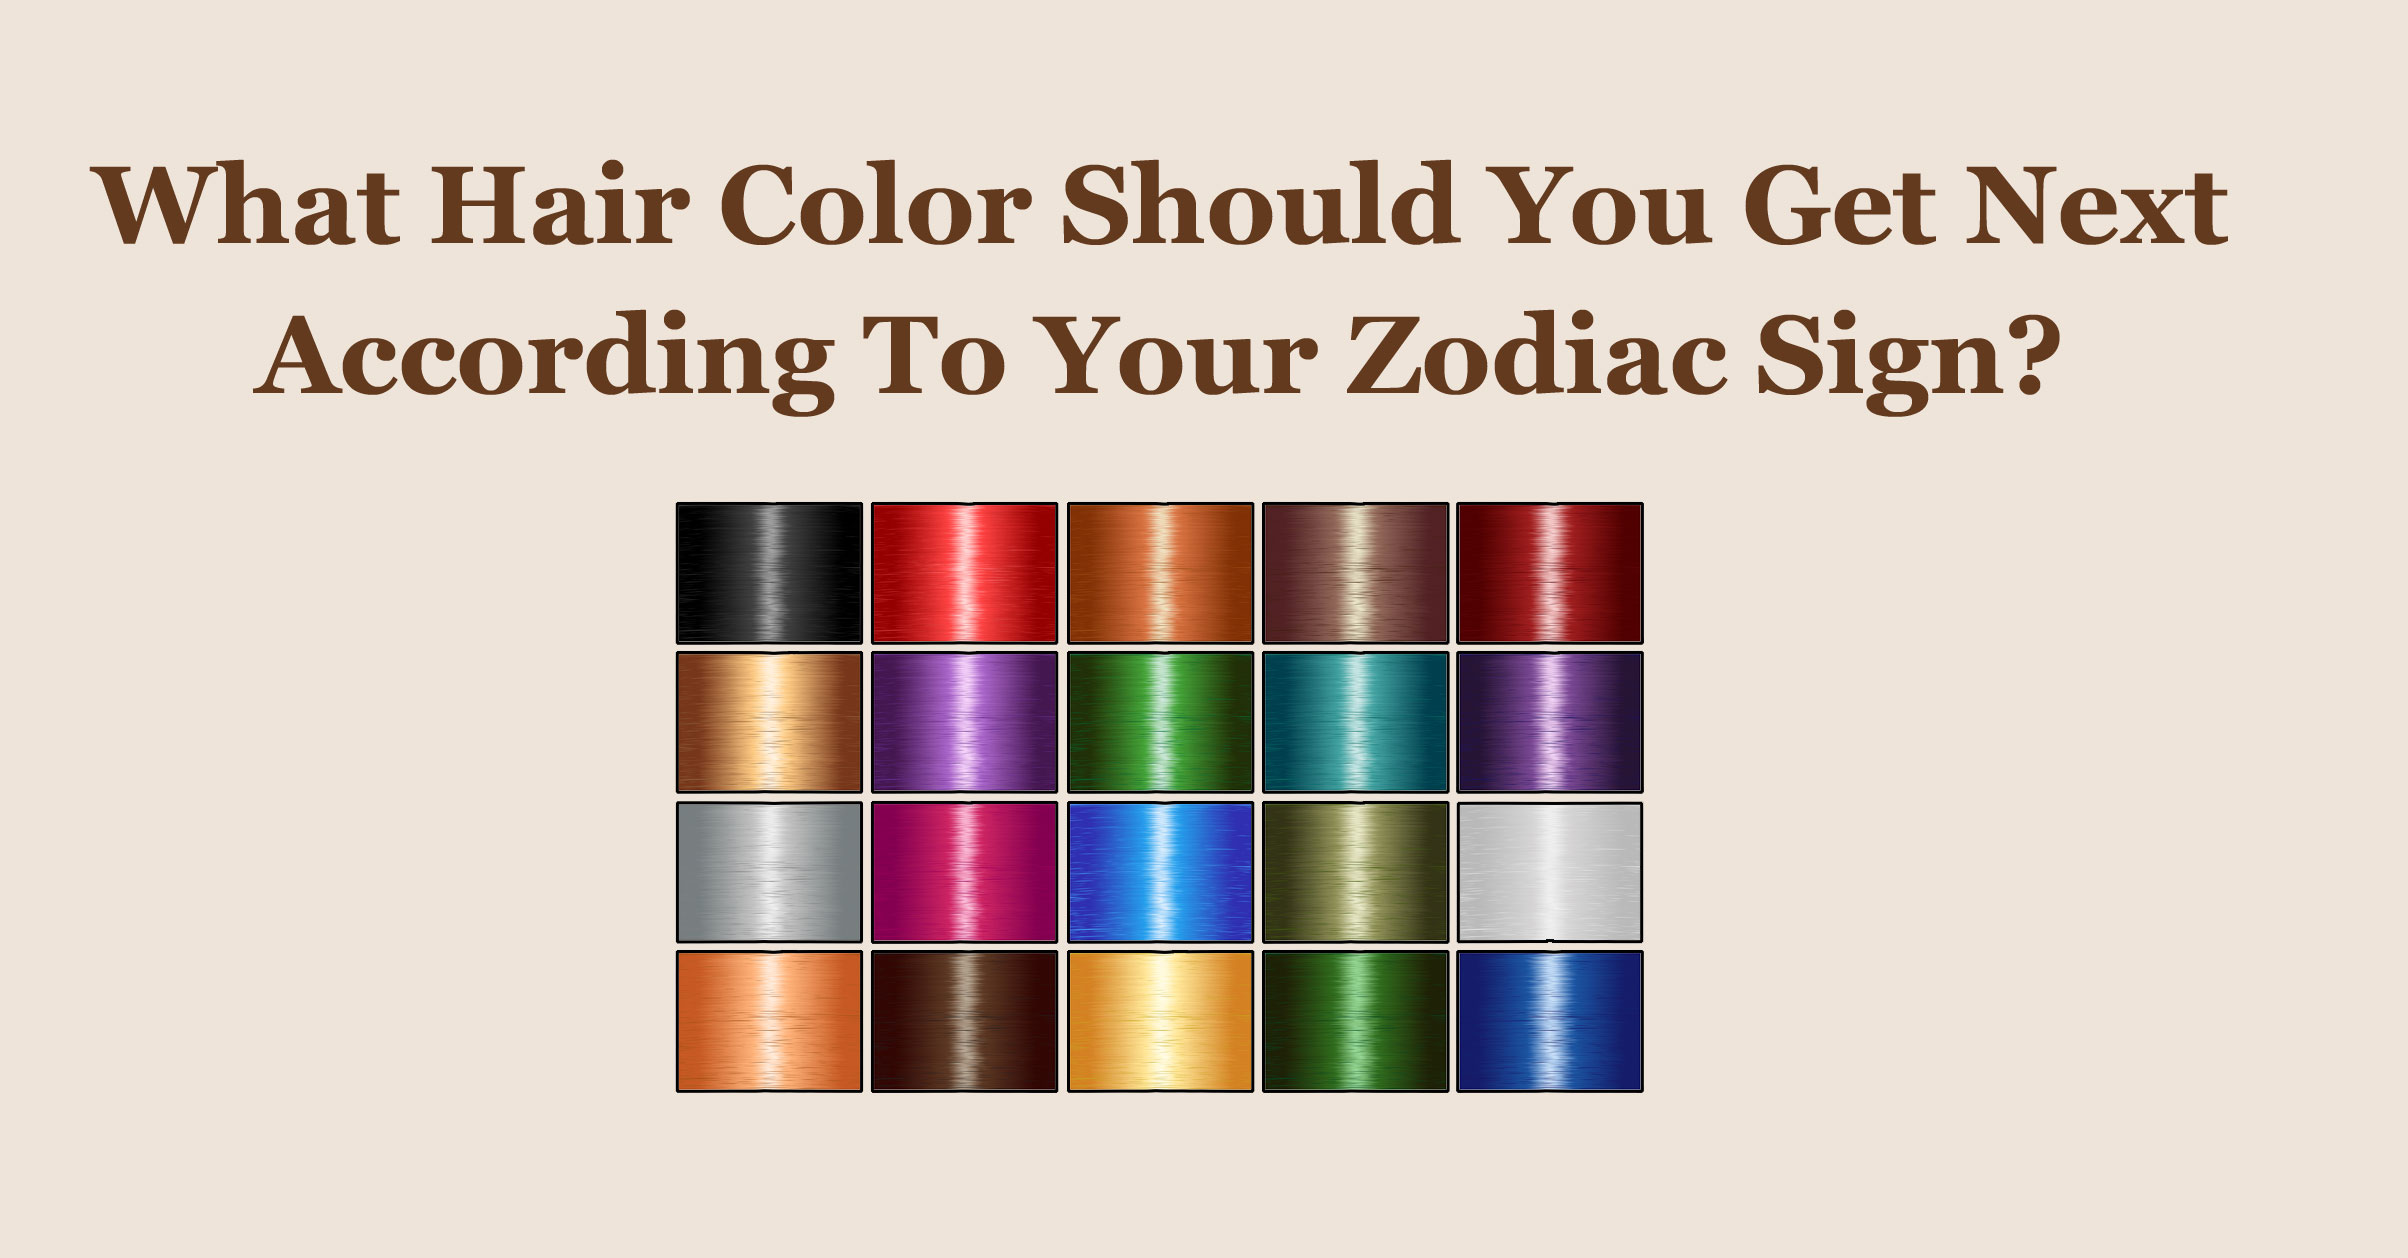 What Hair Color Should You Get Next According To Your Zodiac Sign